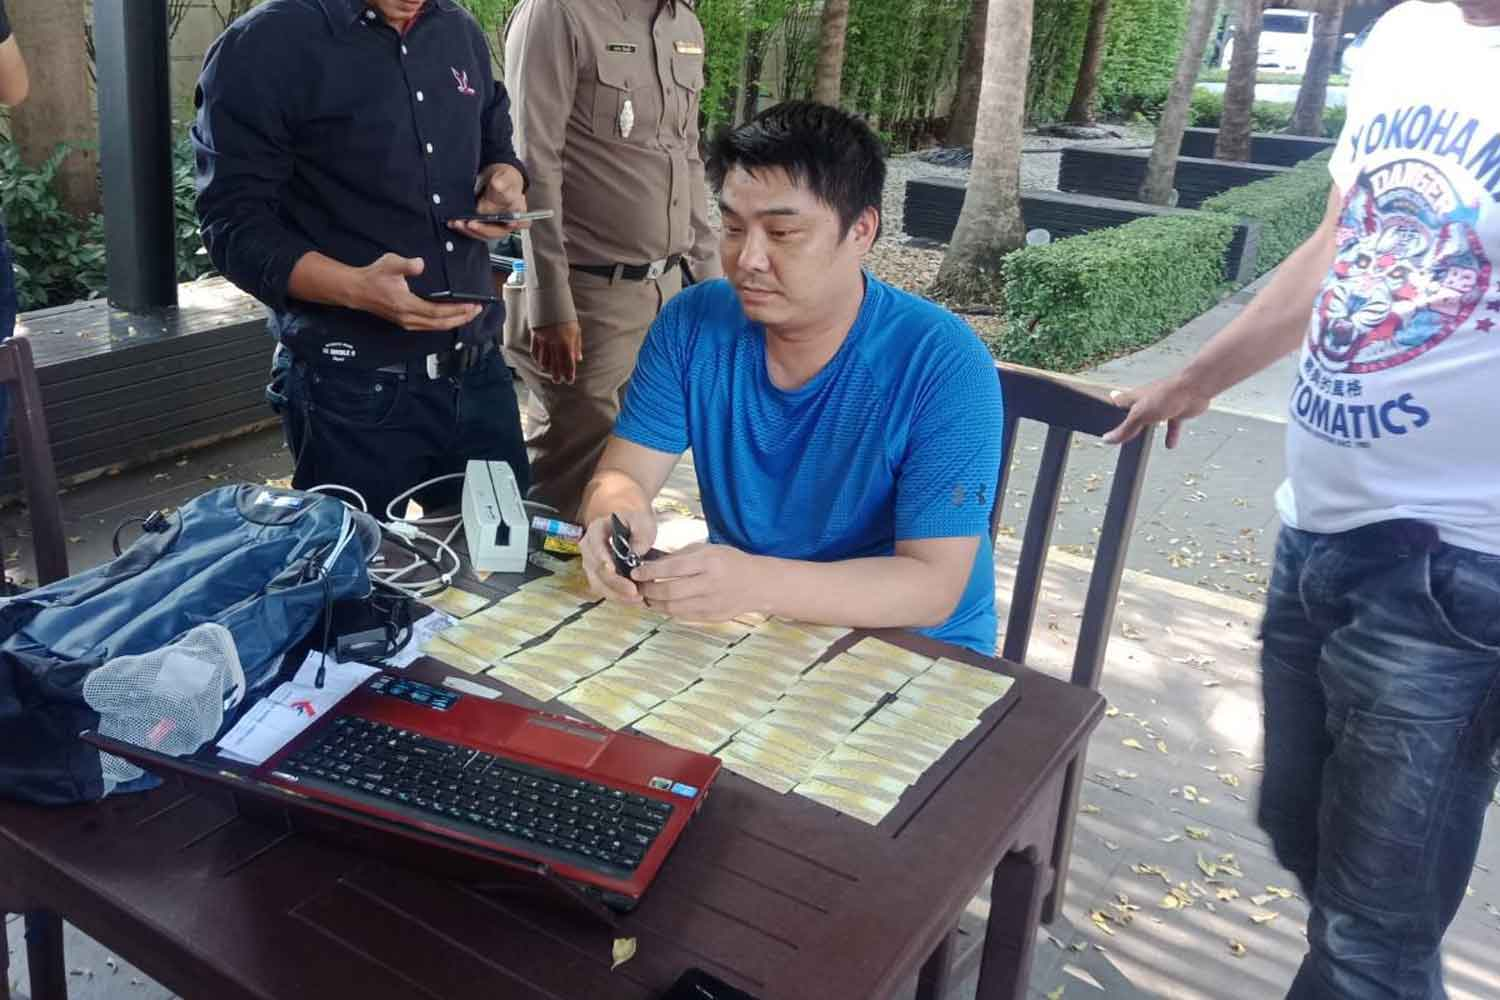 Police hold Feng Yi Sheng, 36, outside his condominium in Huai Khwang, with the forged cards and other equipment seized from his room. (Photo supplied)